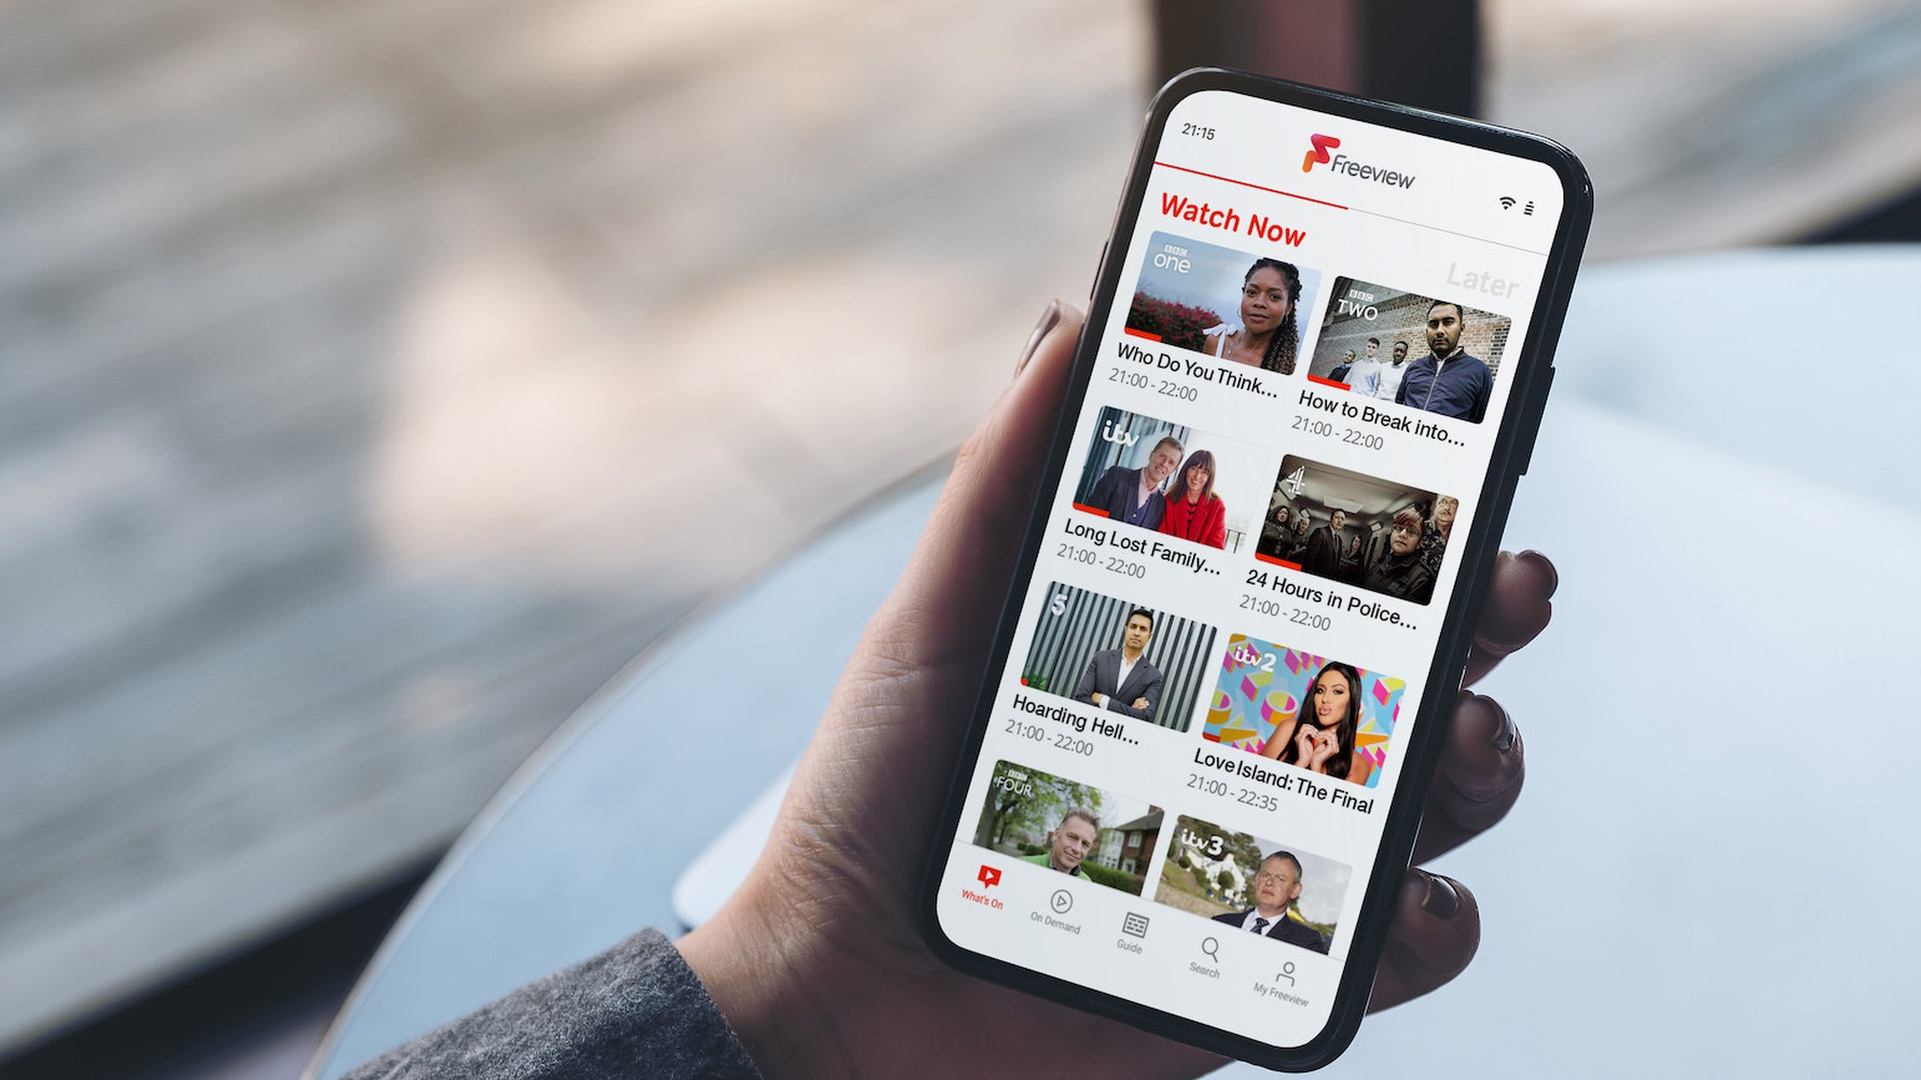 Freeview's mobile app is now available for Android